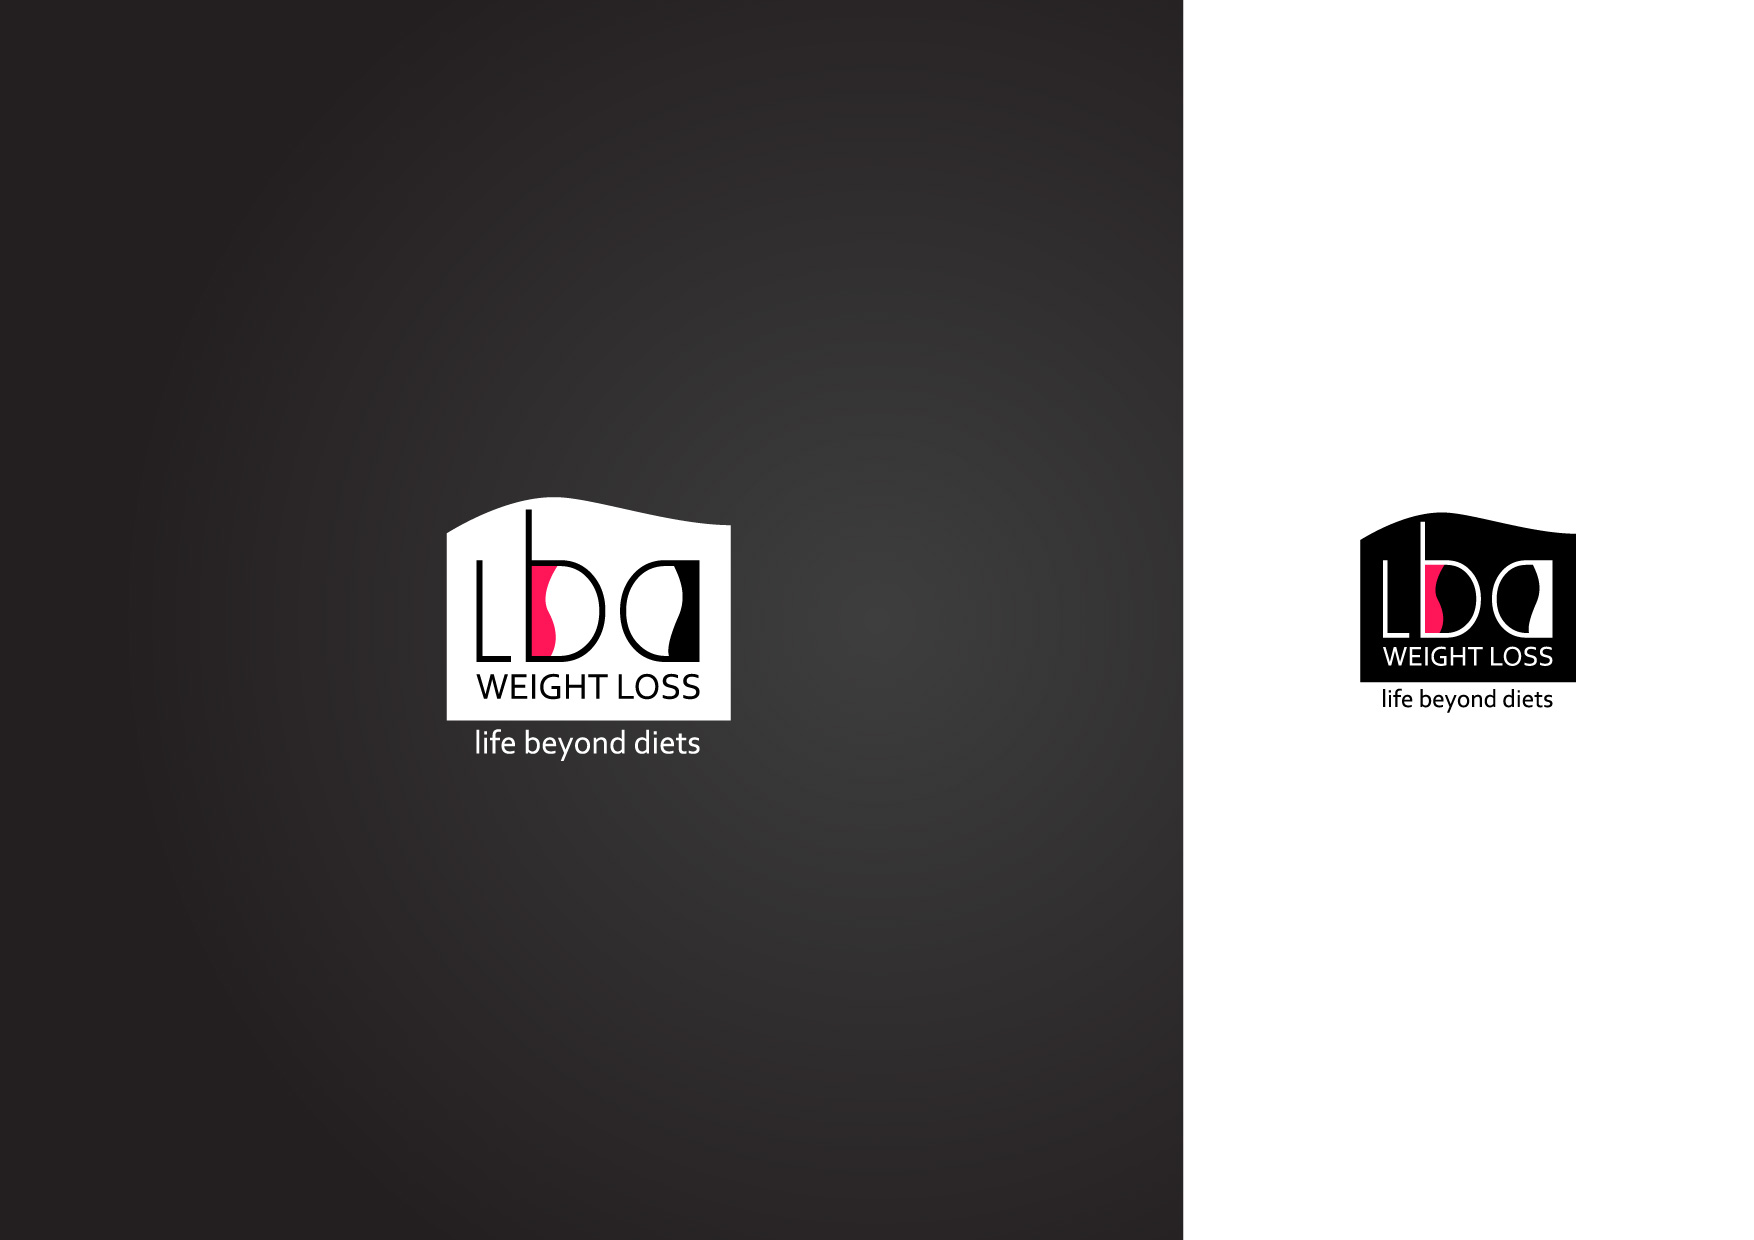 Logo Design by Osi Indra - Entry No. 55 in the Logo Design Contest Imaginative Logo Design for LBD Weight Loss.